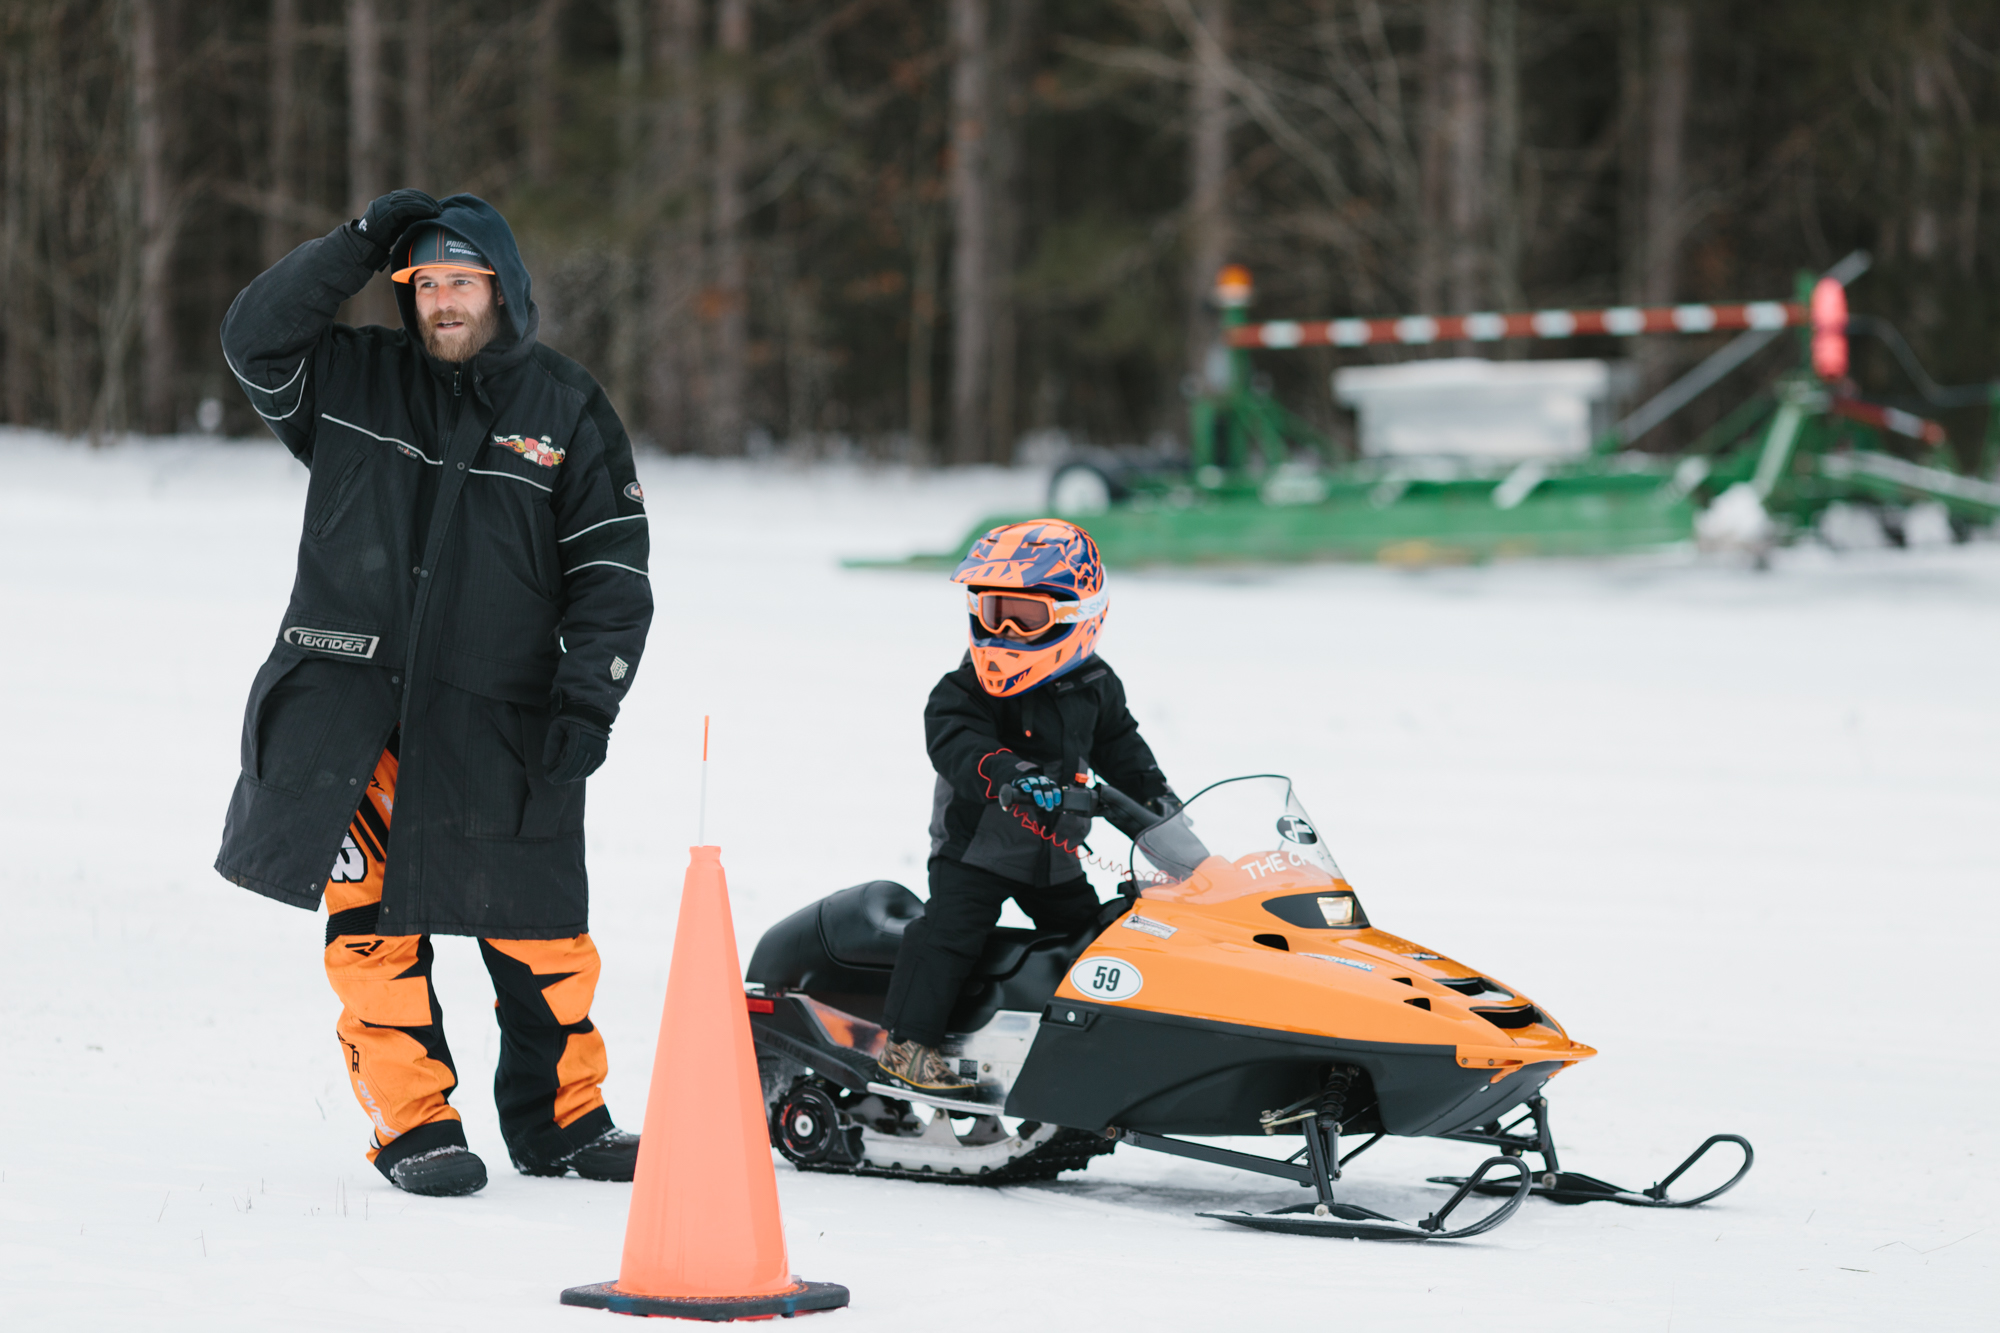 Northern Michigan Snowmobile Race Empire Airport Leelanau County